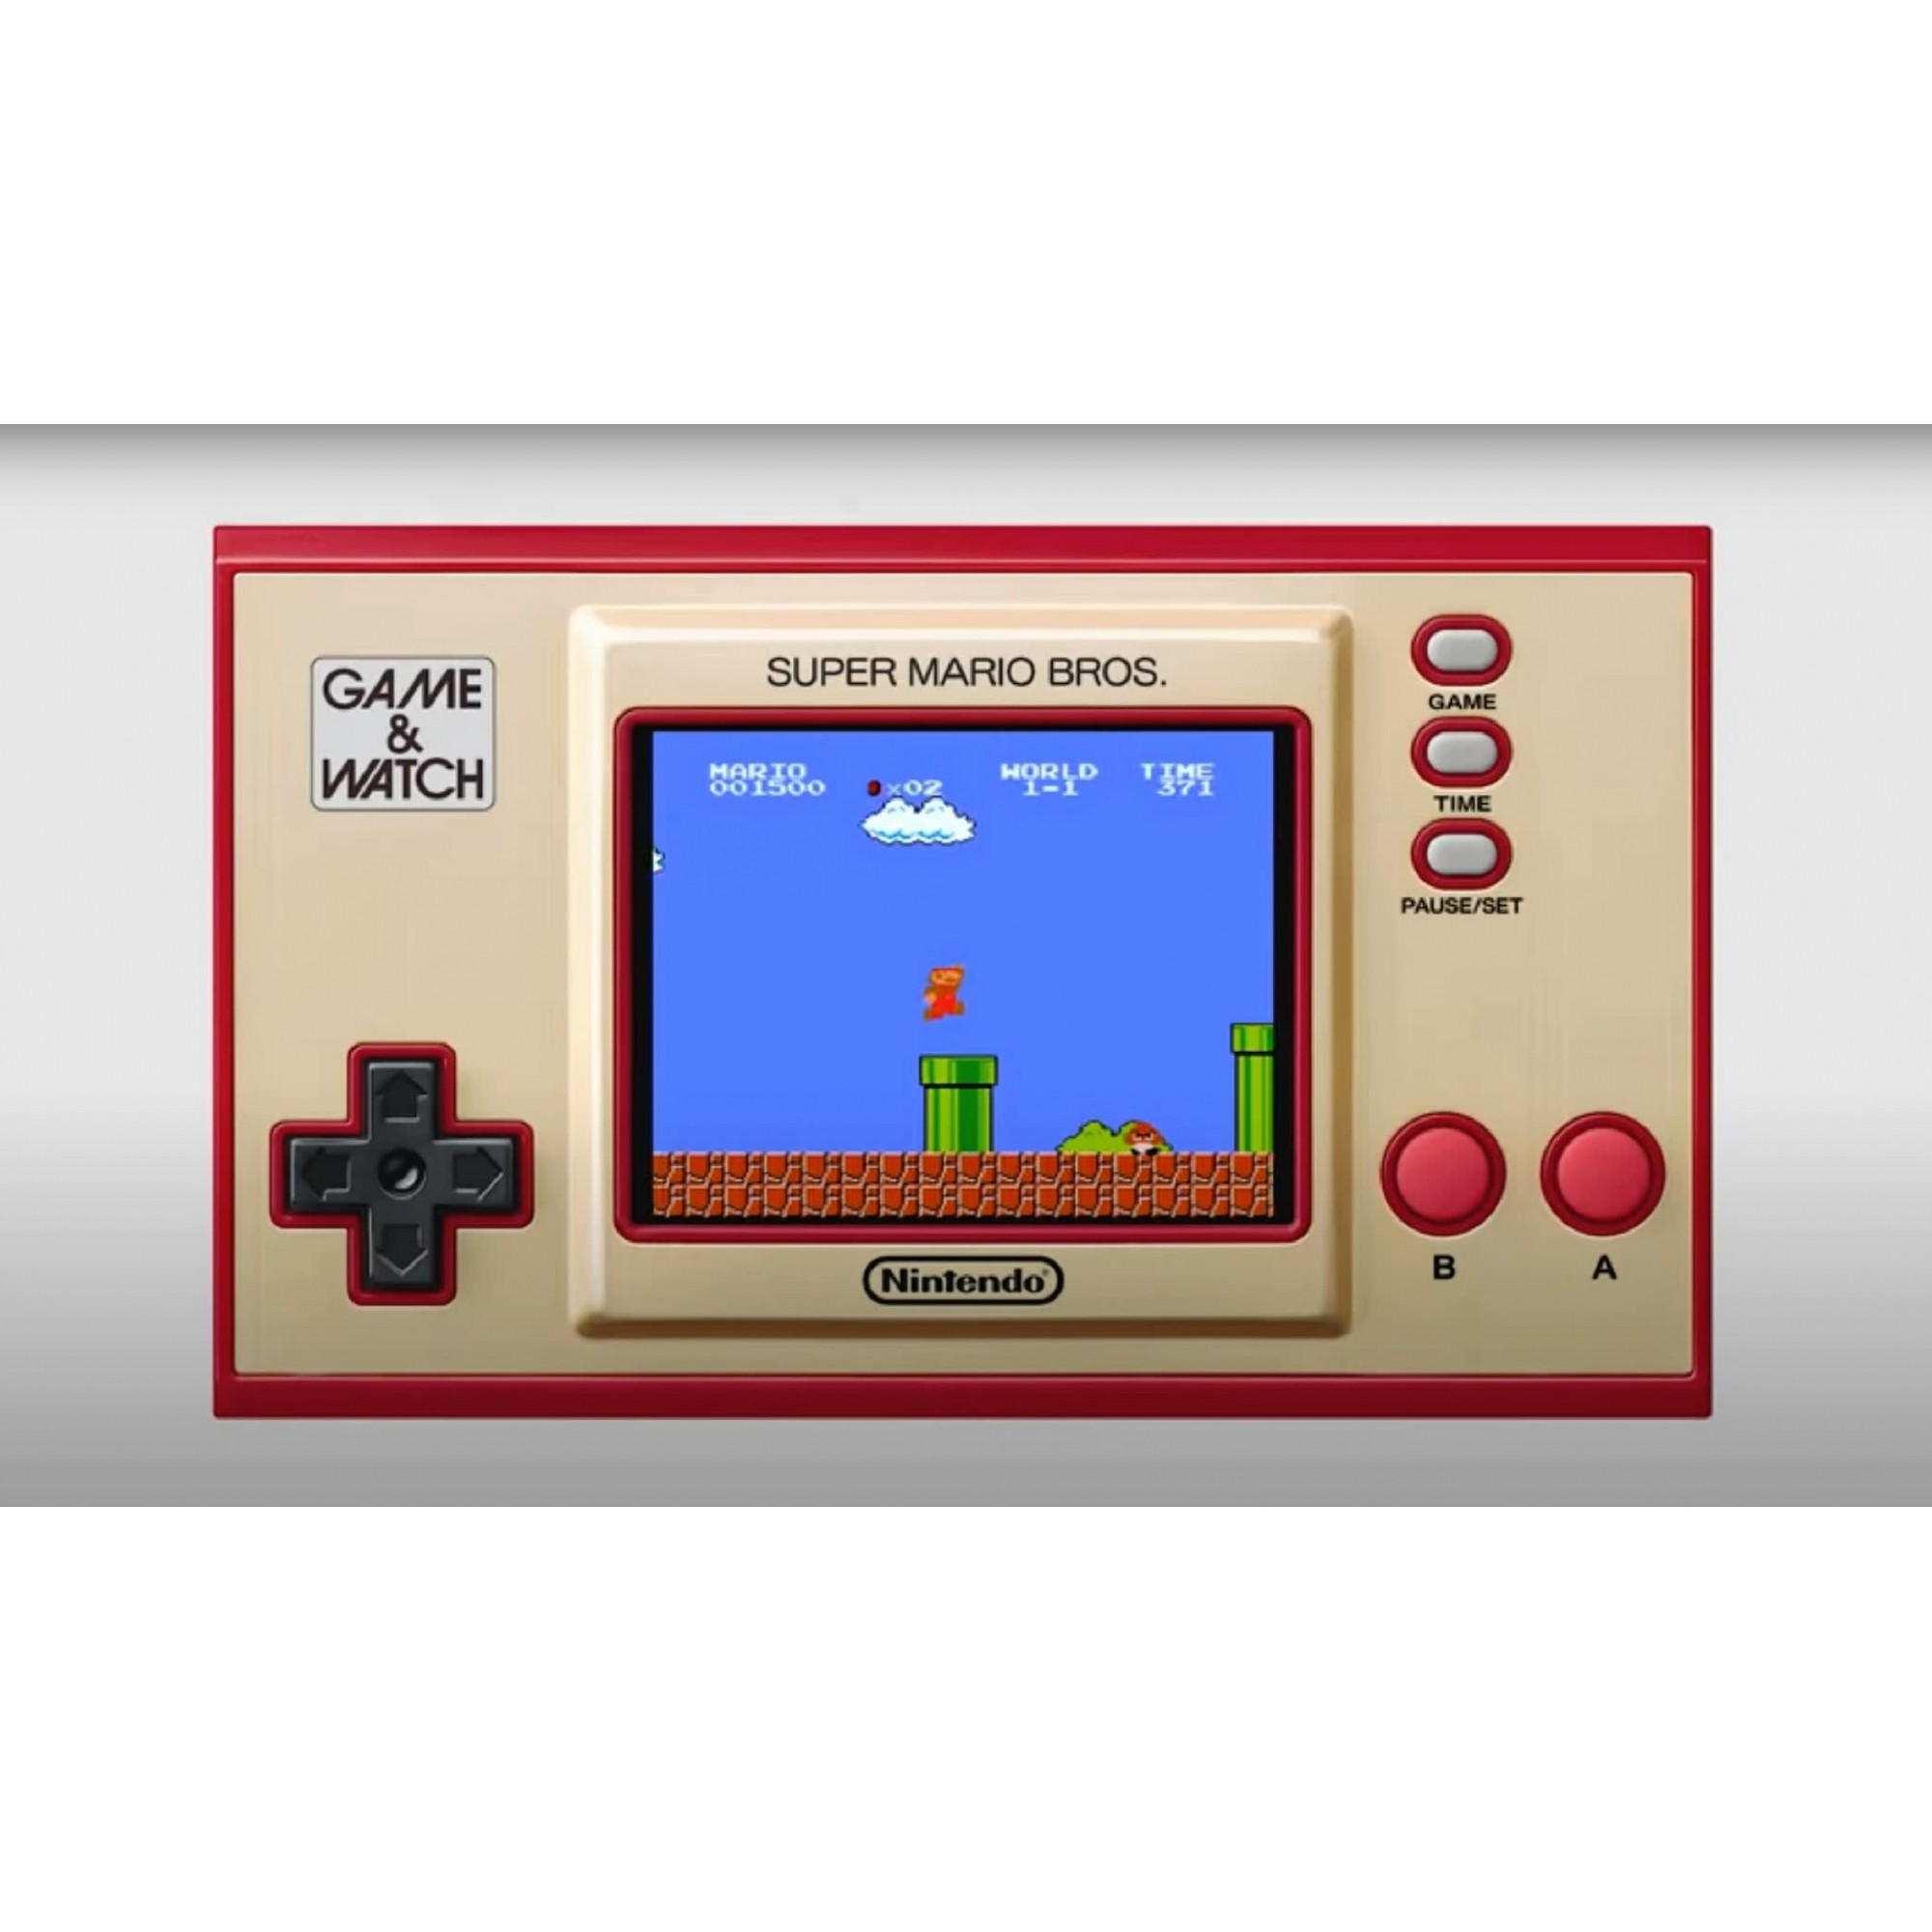 Game & Watch Super Mario Bros - Nintendo - Edição Especial e Limitada